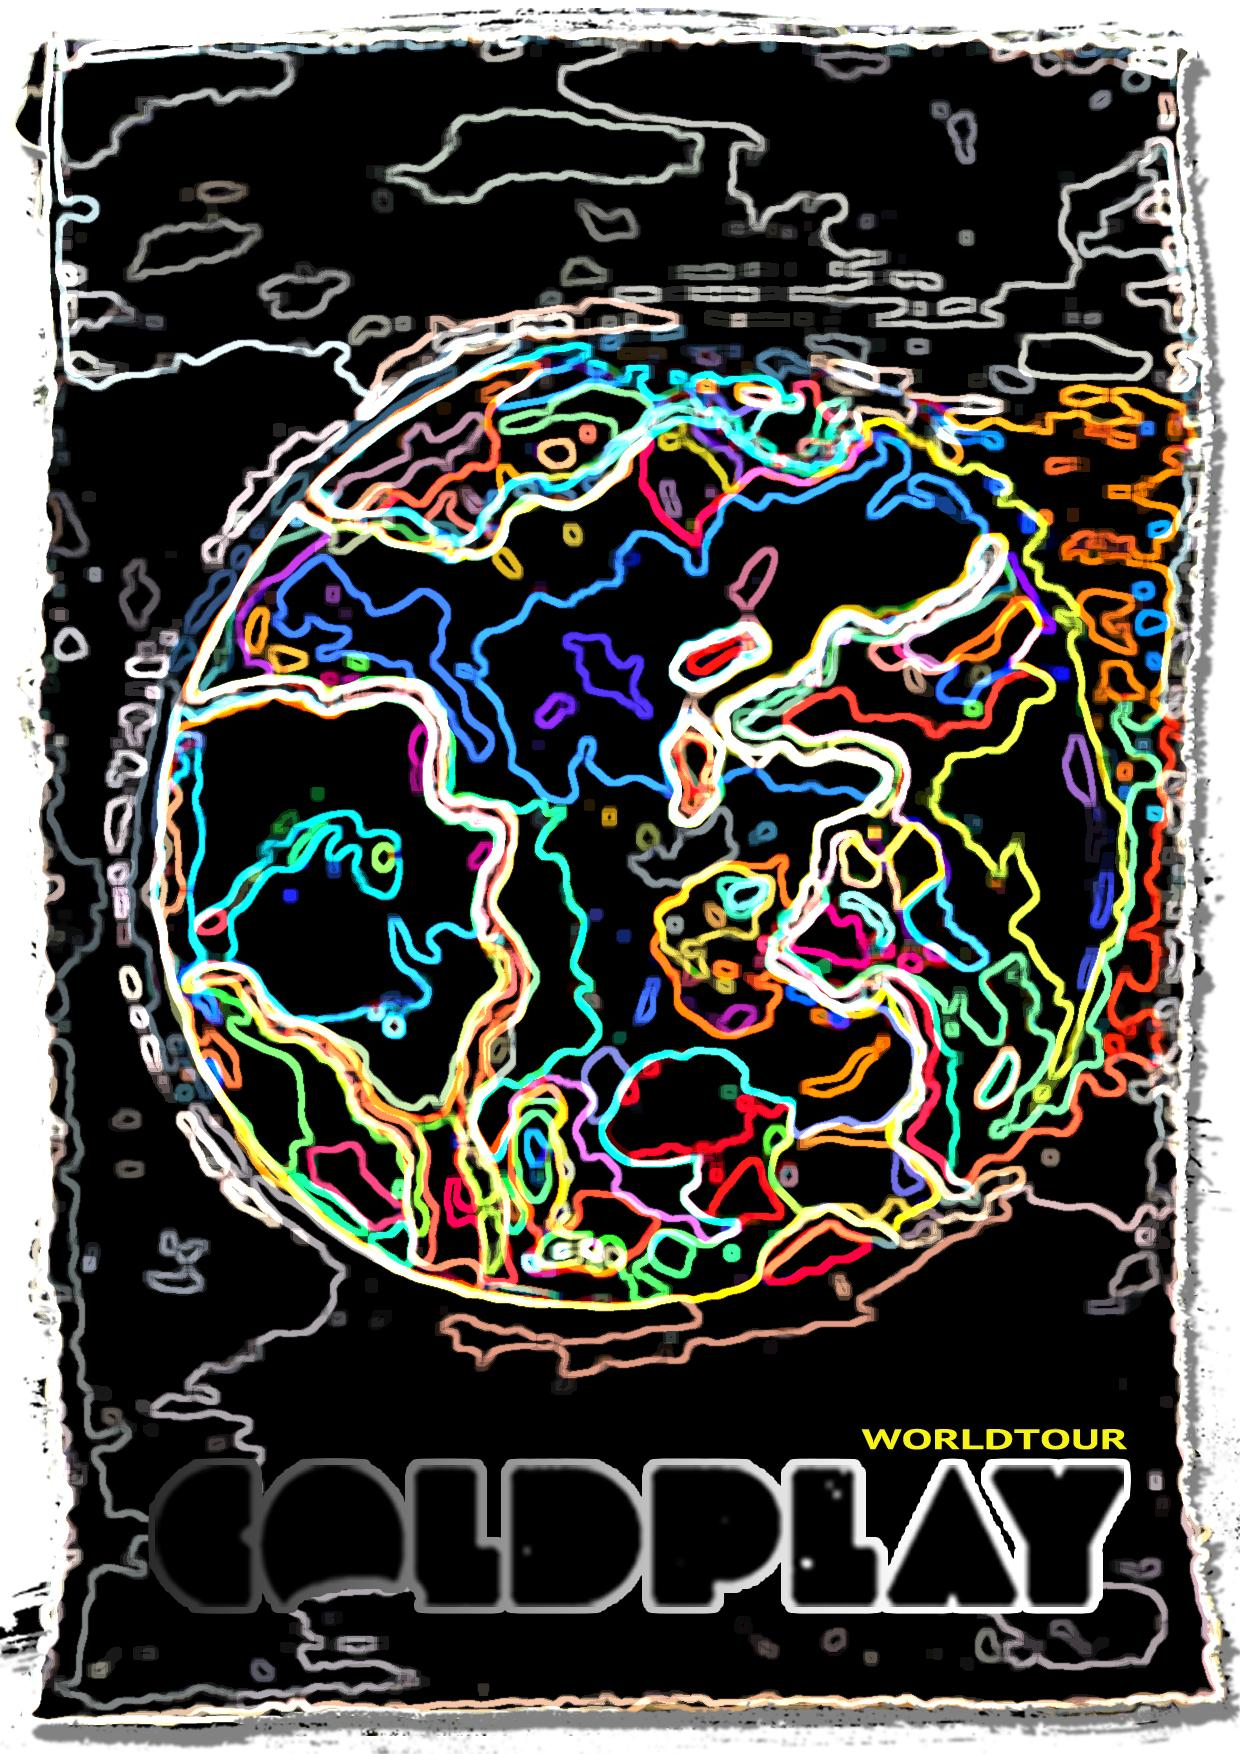 Coldplay world tour - image 7 - student project